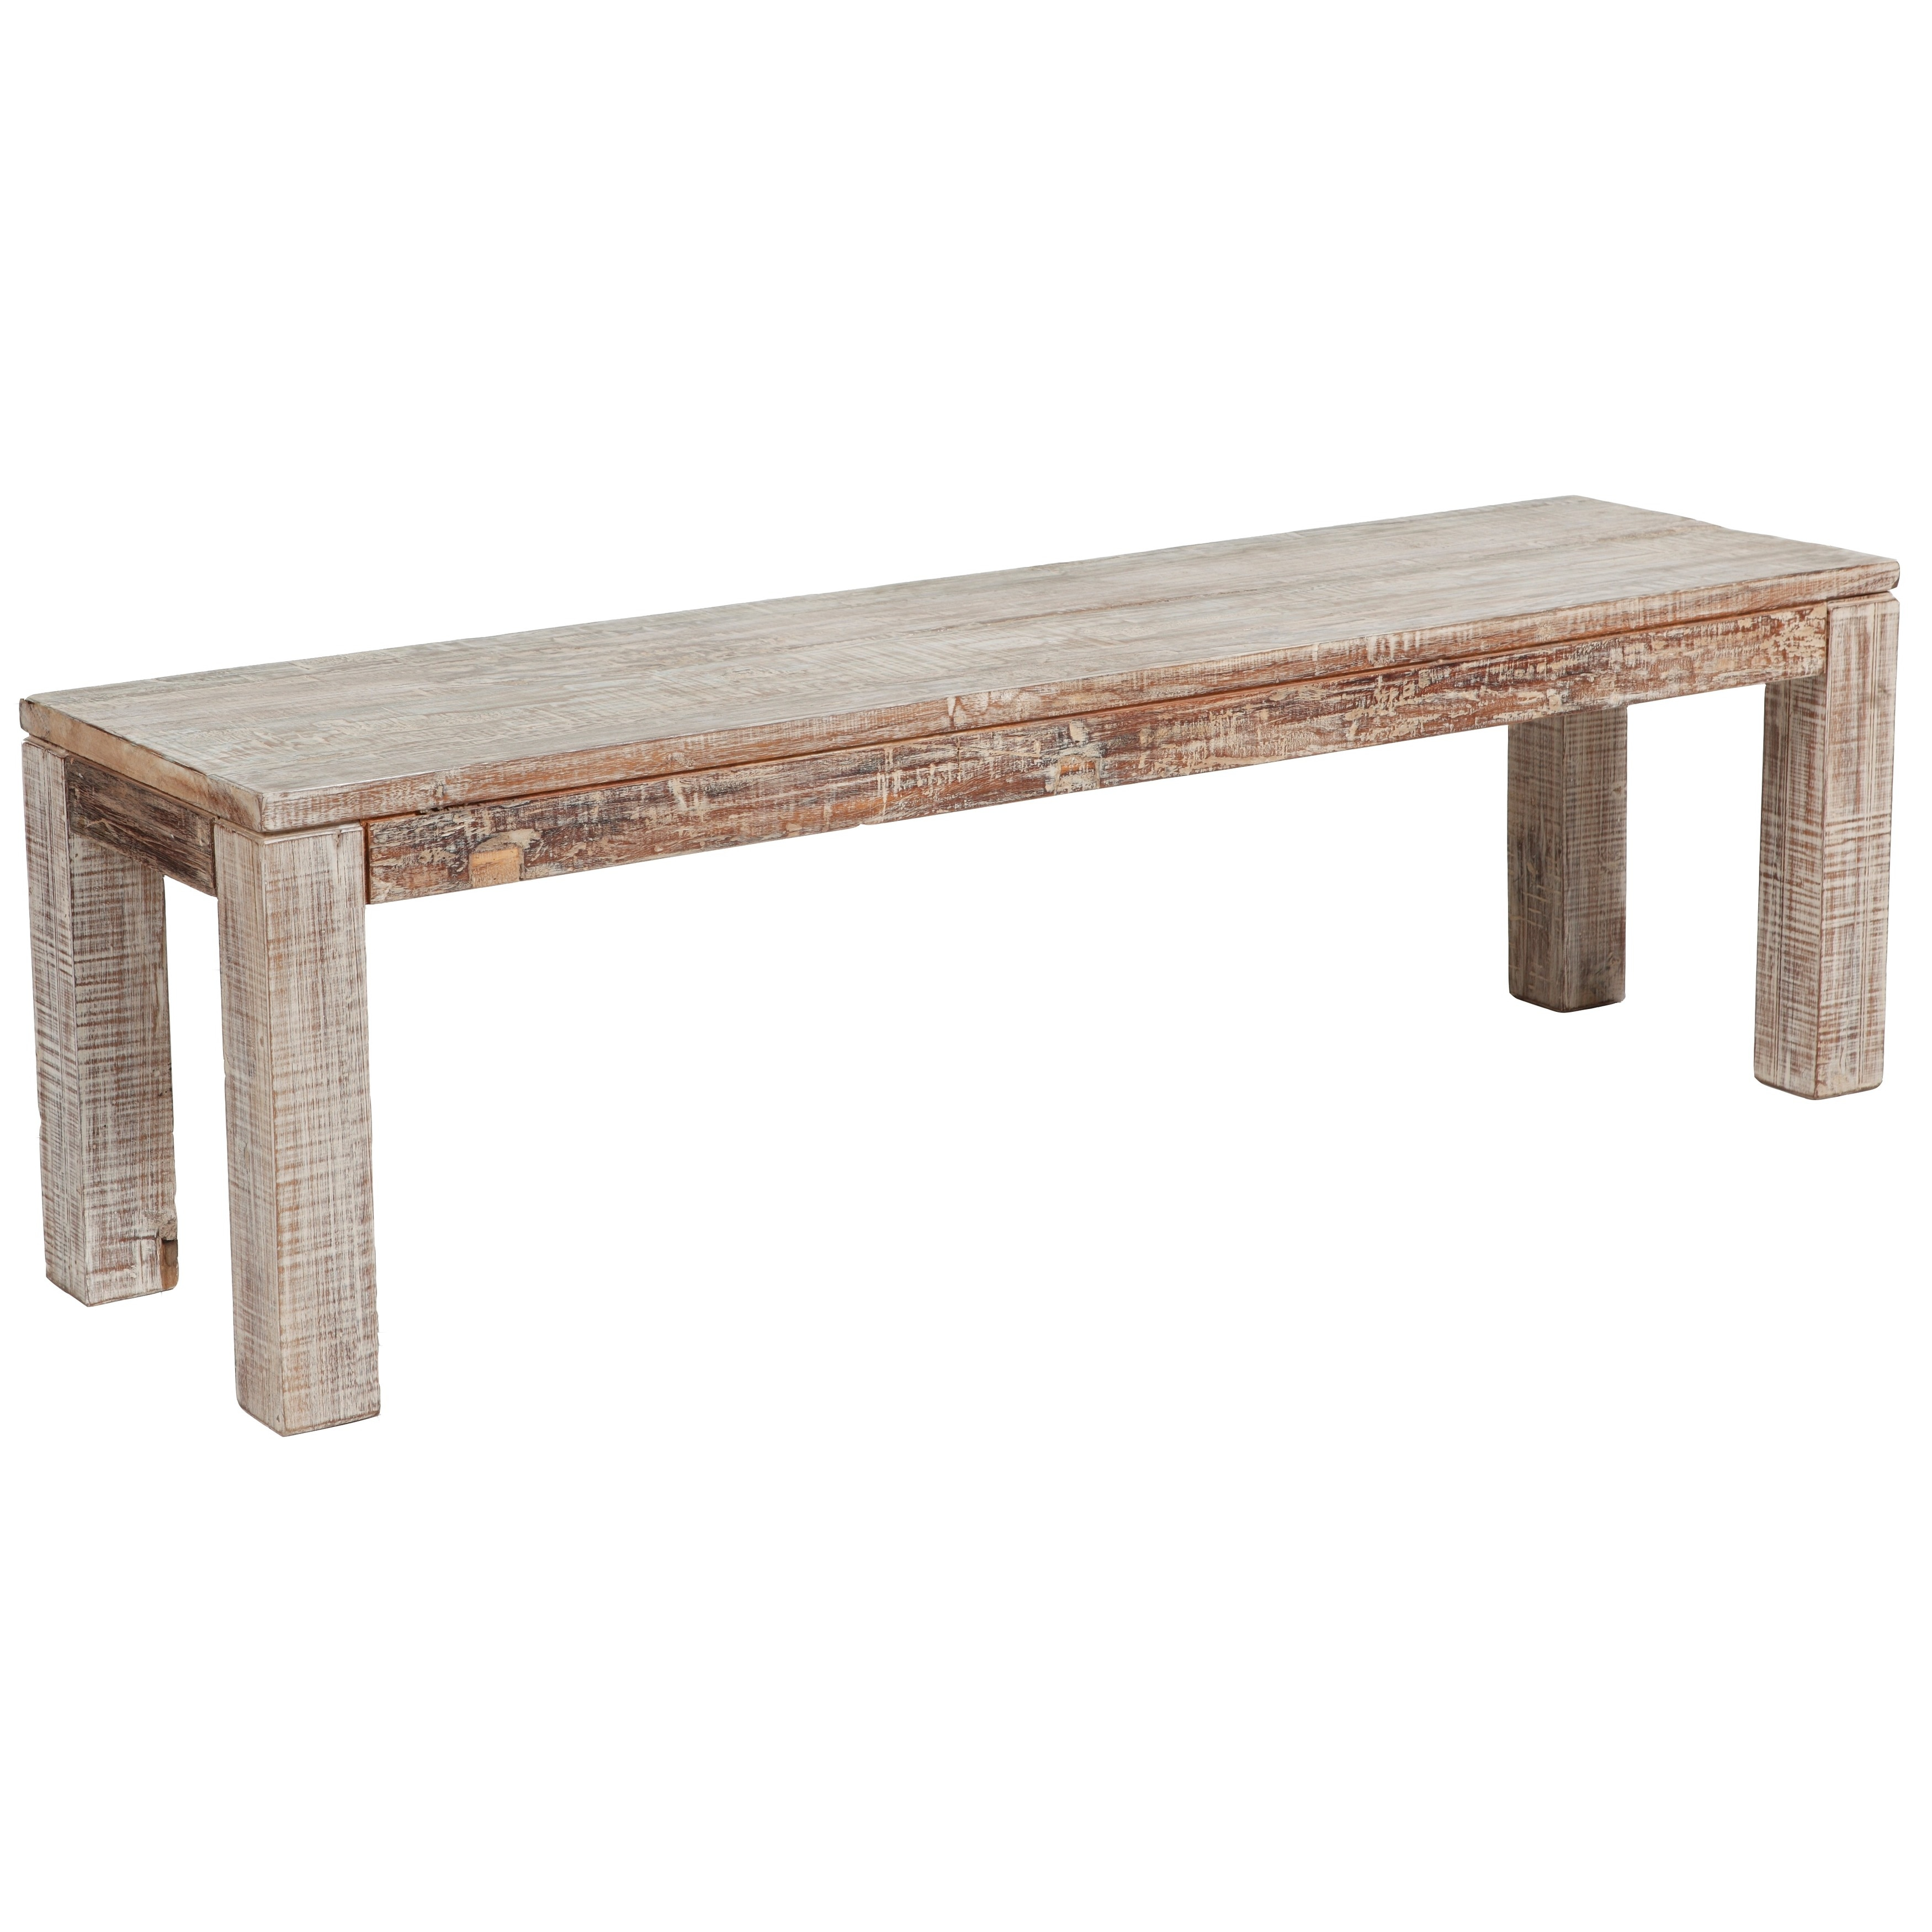 Hamshire Reclaimed Wood 60 Inch Bench By Kosas Home   Free Shipping Today    Overstock.com   15352510